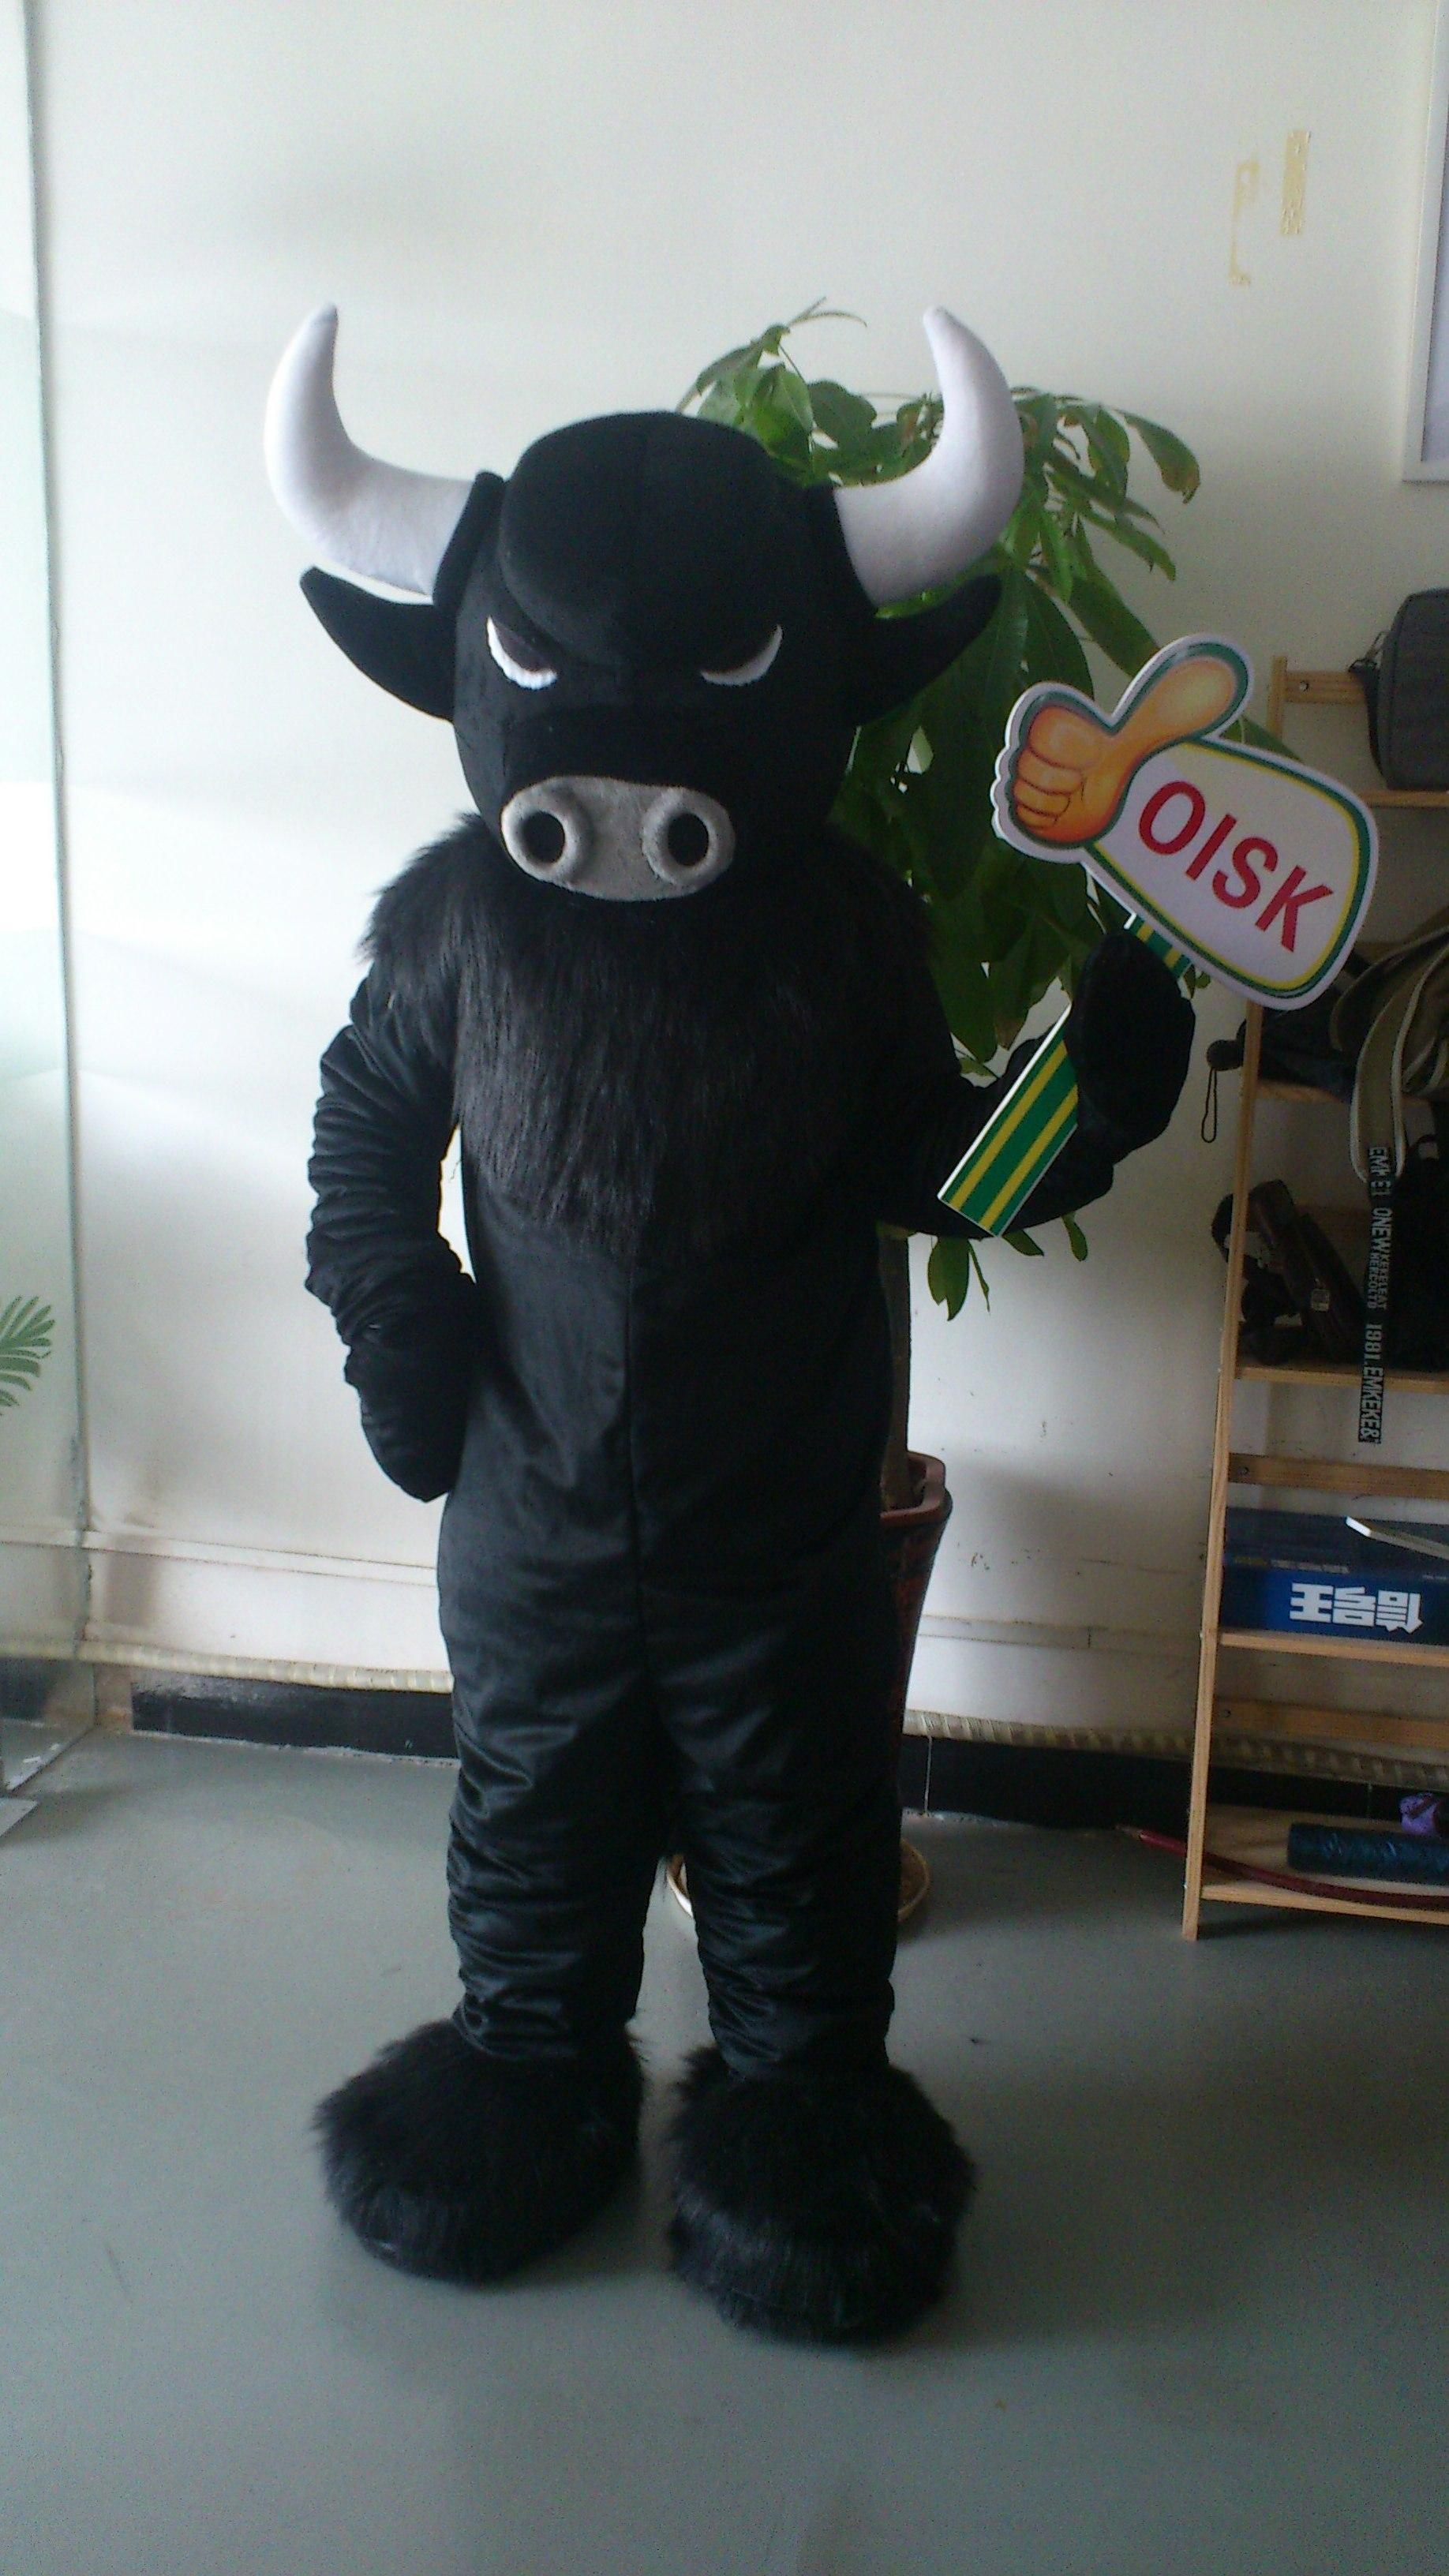 Oisk Baby Fierce Black Bull Buffalo Mascot Costume Adult Size Outfit Plush Halloween Christmas Costumes Fancy Dress Mascot Animal Costumes Mascot Costumes ... & Oisk Baby Fierce Black Bull Buffalo Mascot Costume Adult Size Outfit ...